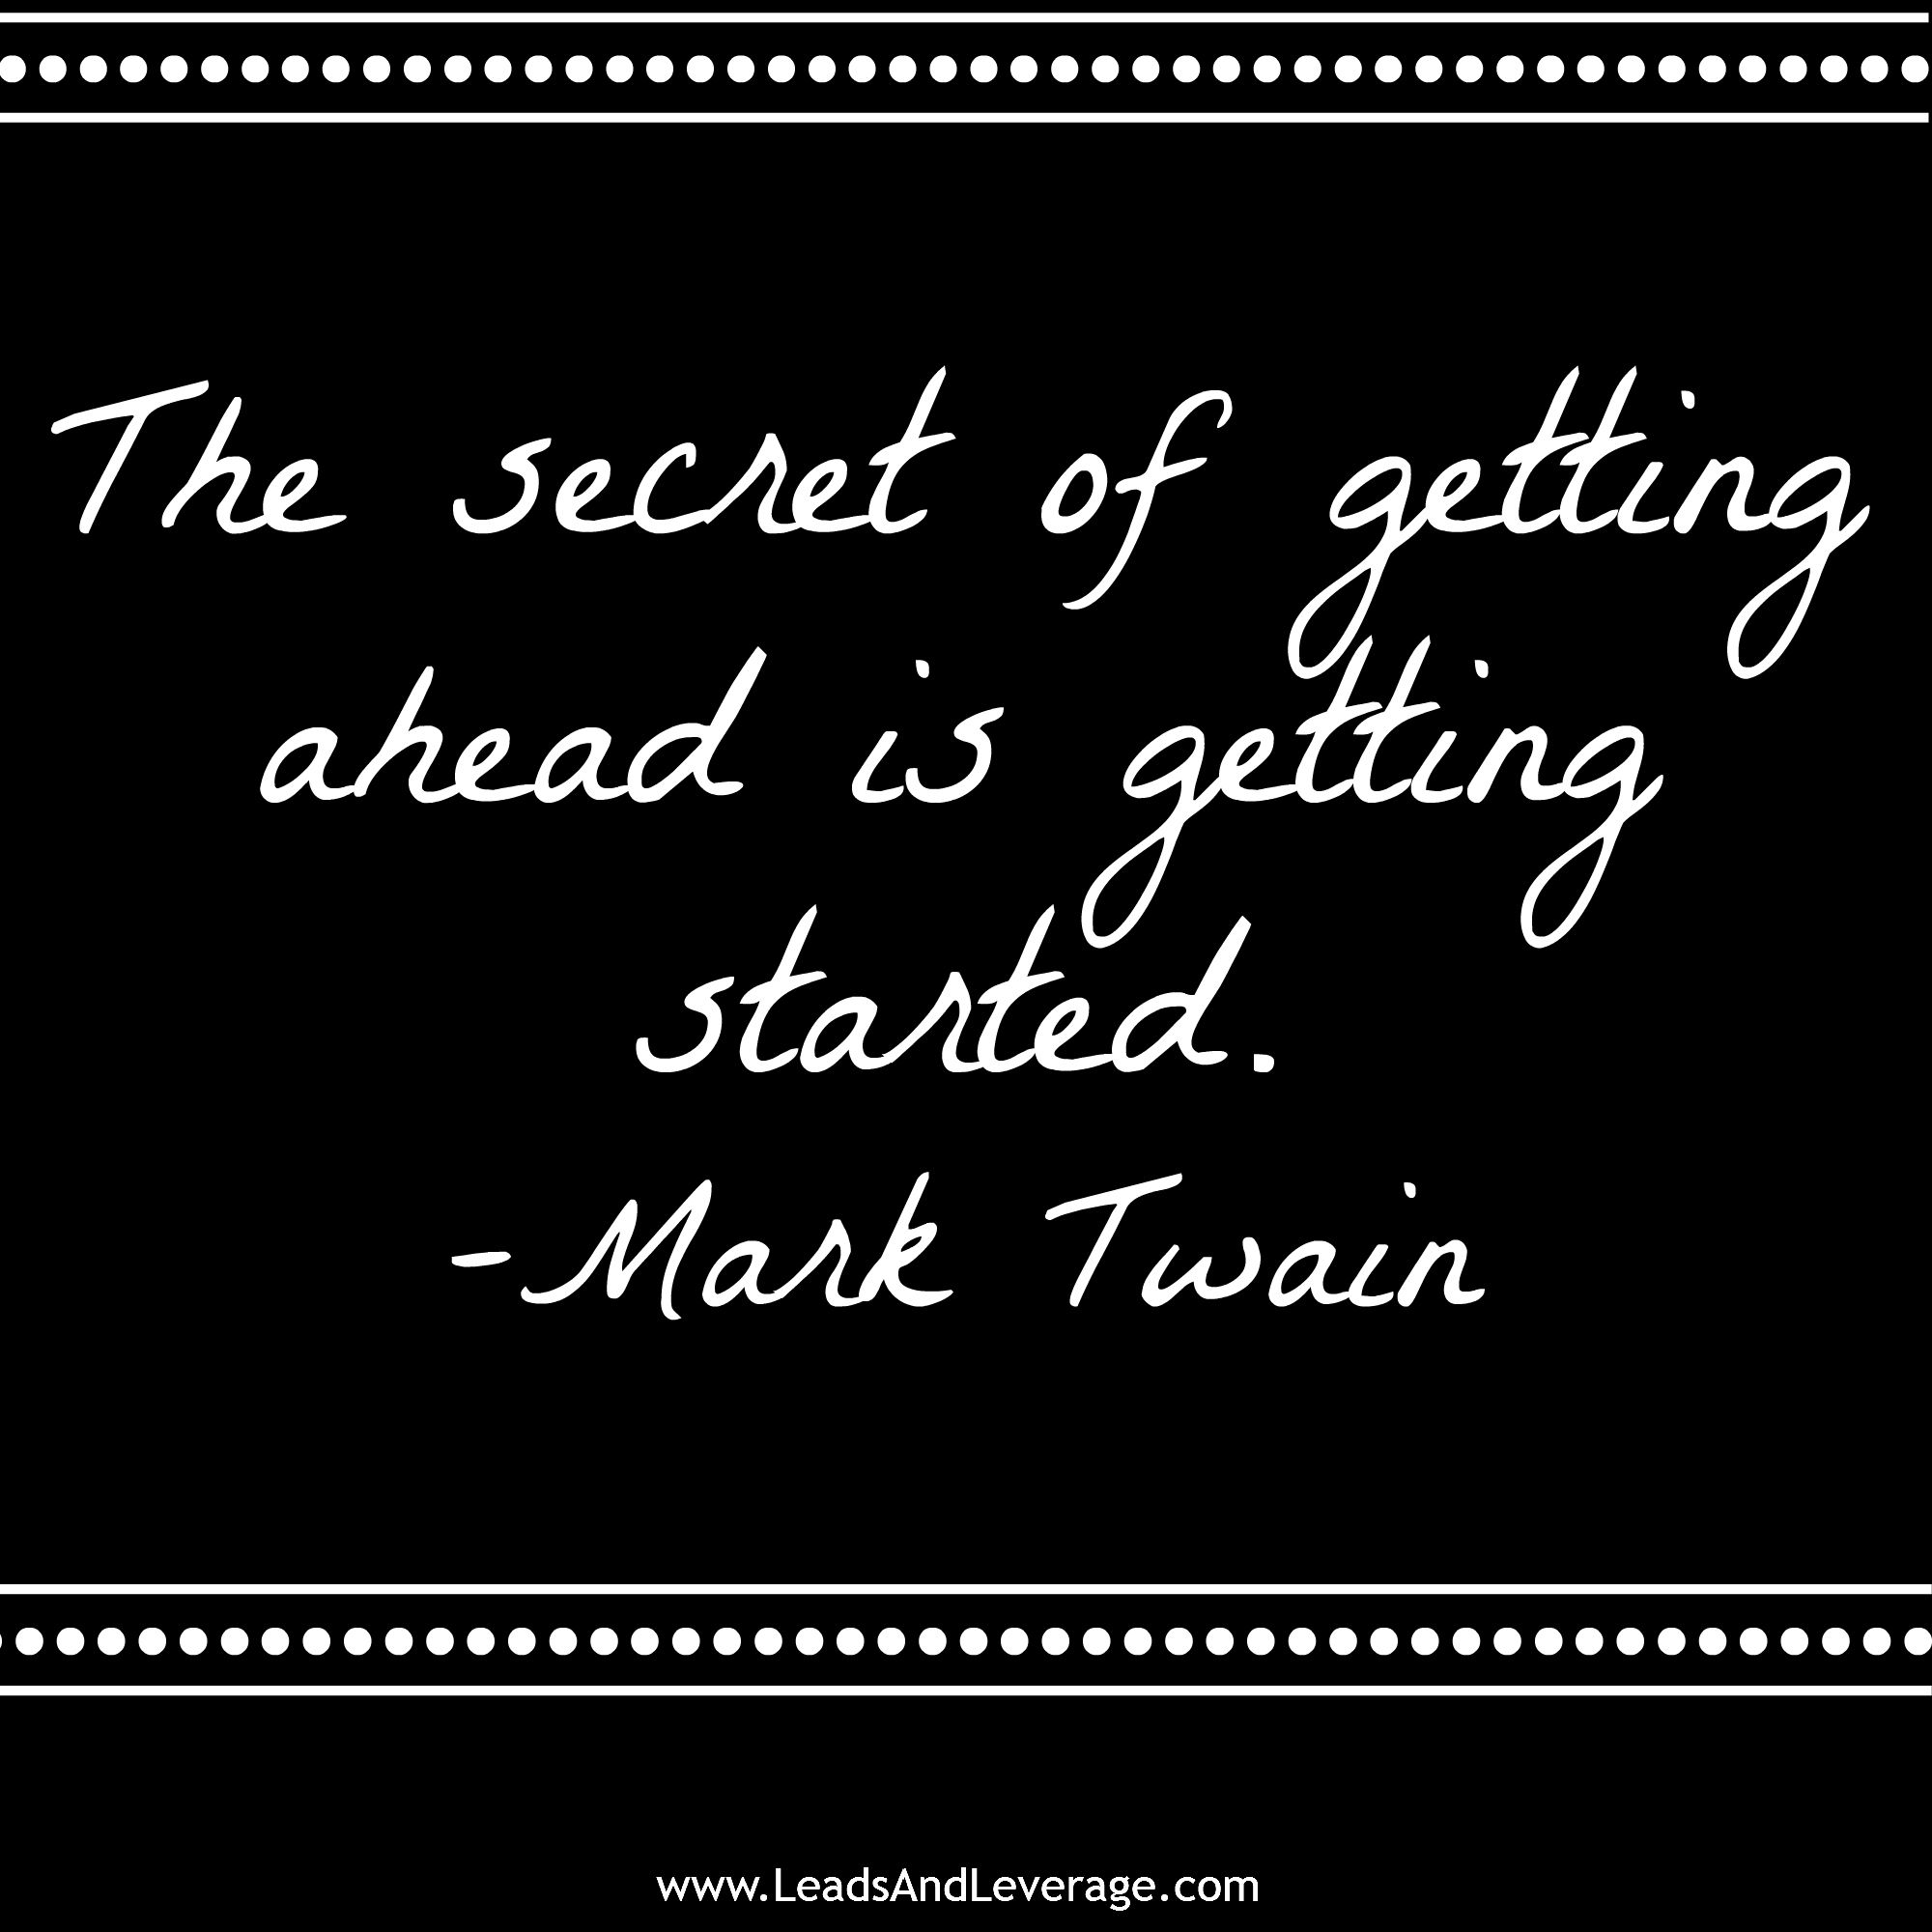 Quote Author Mark Twain  LeadsandleverageCom Helping Real